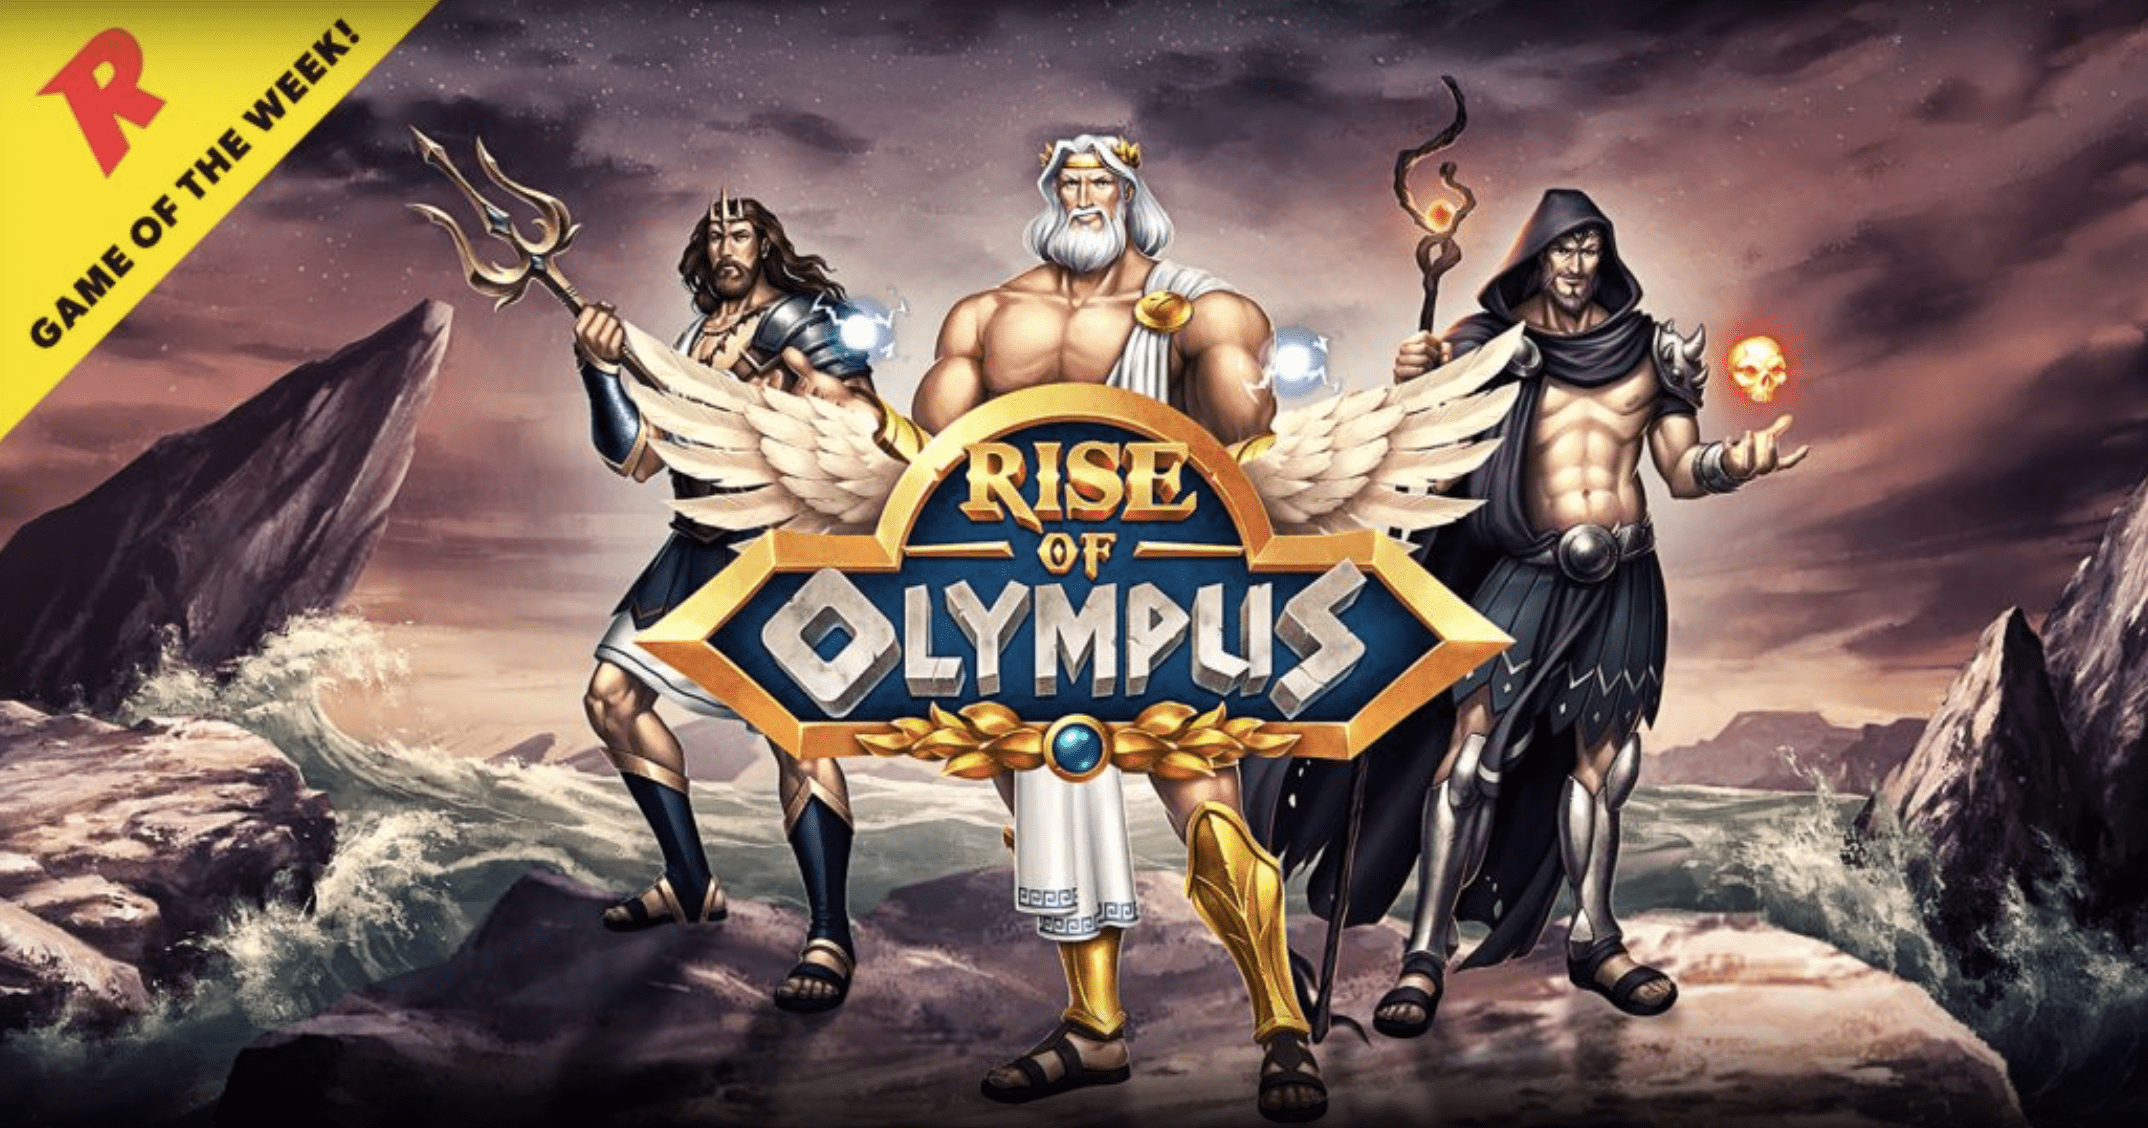 Try your luck at Rise of Olympus from Rizk Casino